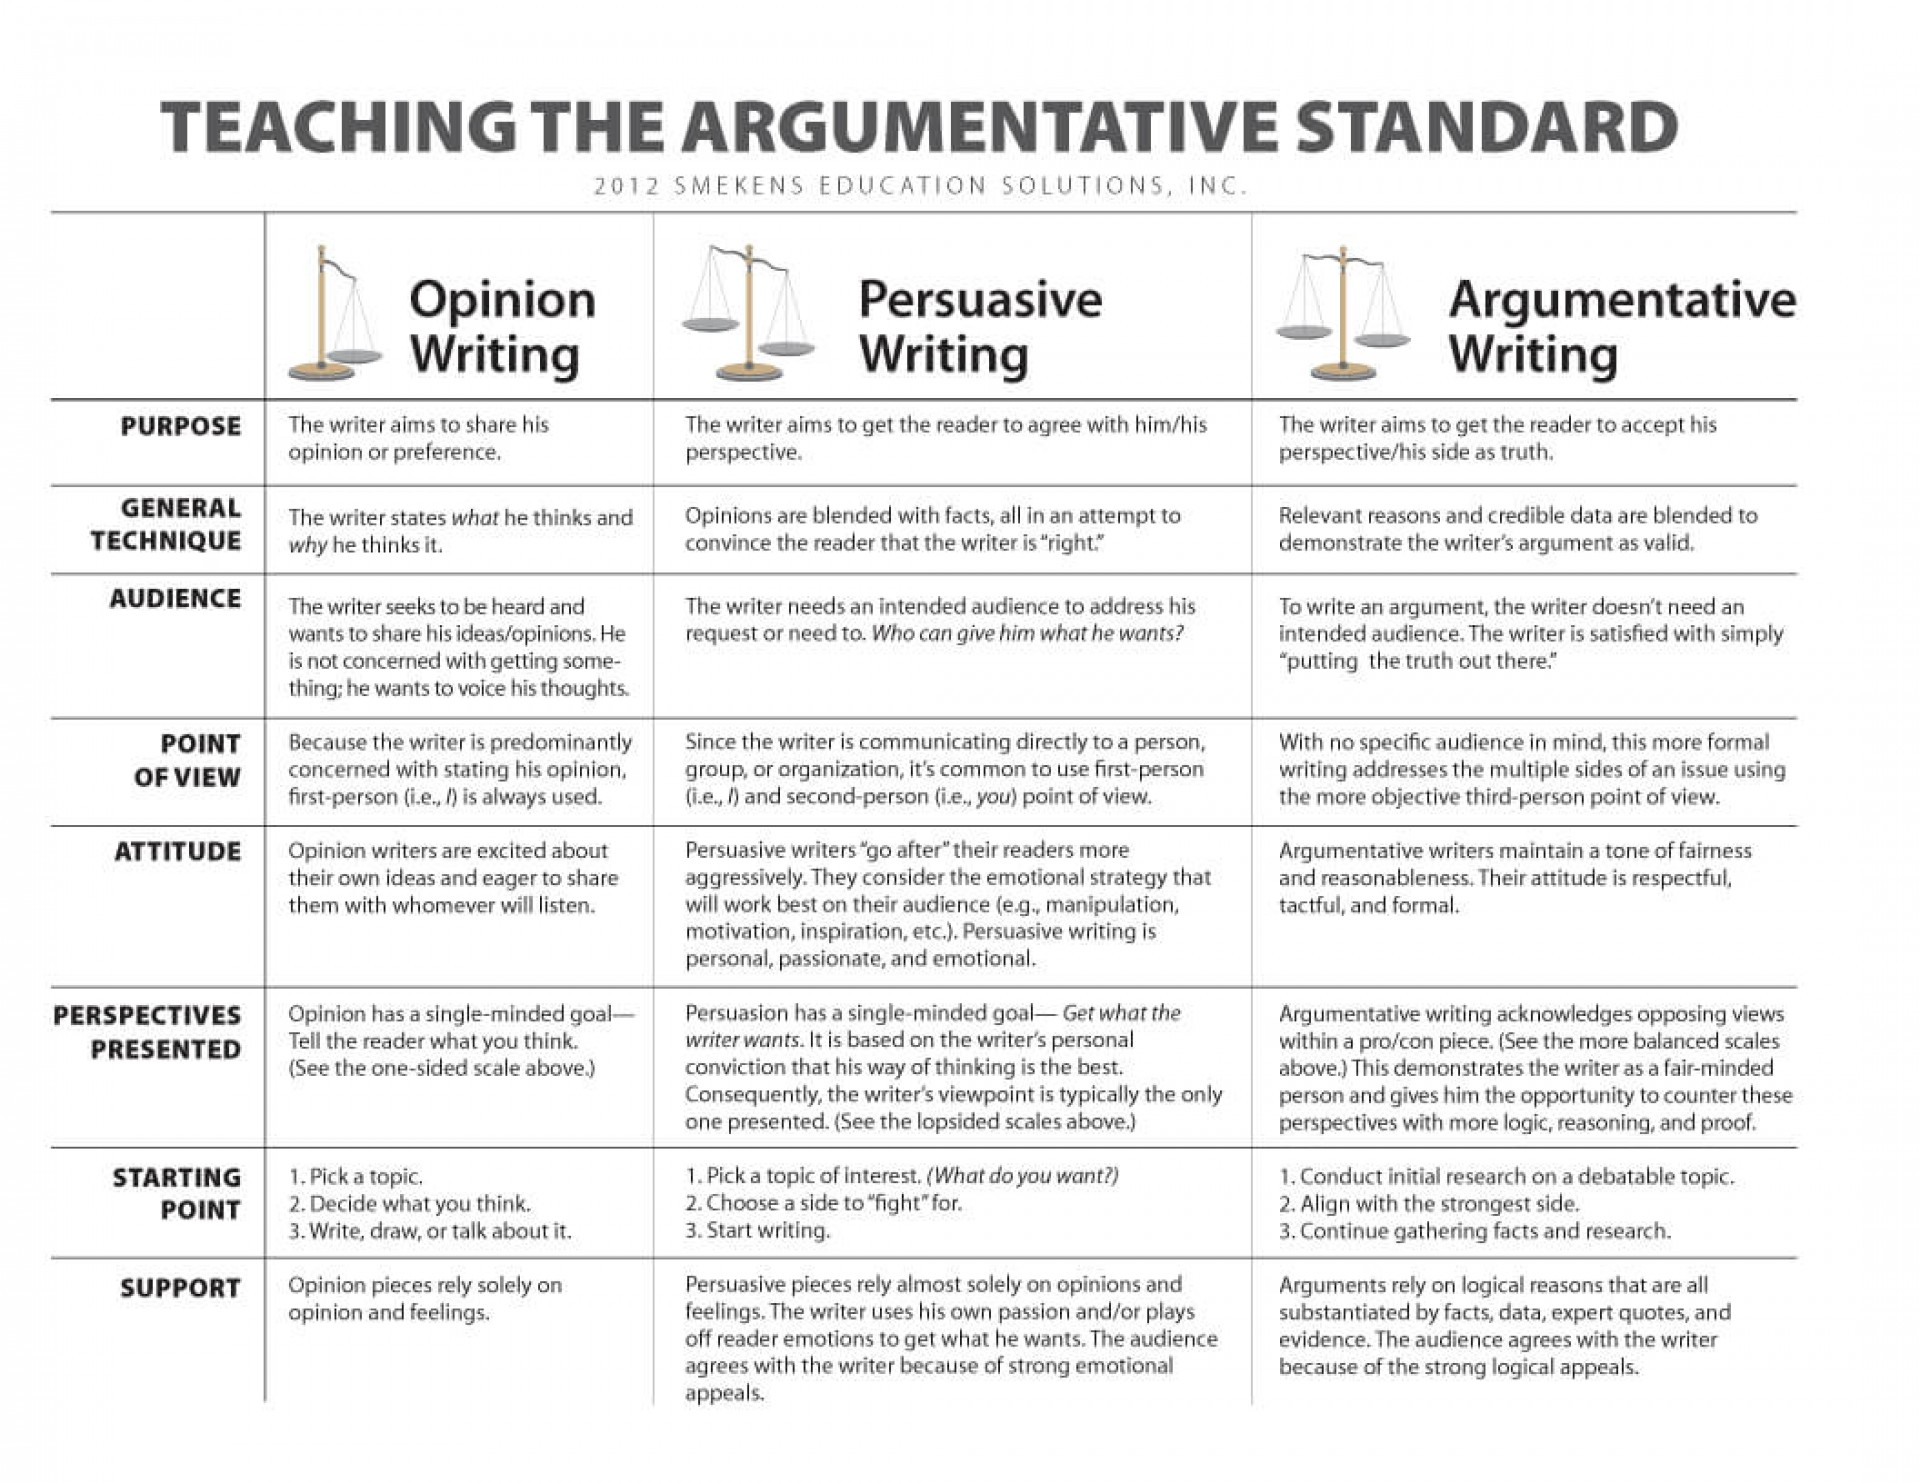 003 Teaching The Argumetative Standardo Write An Argumentative Essay Surprising Sample Example In Which You State And Defend 1920